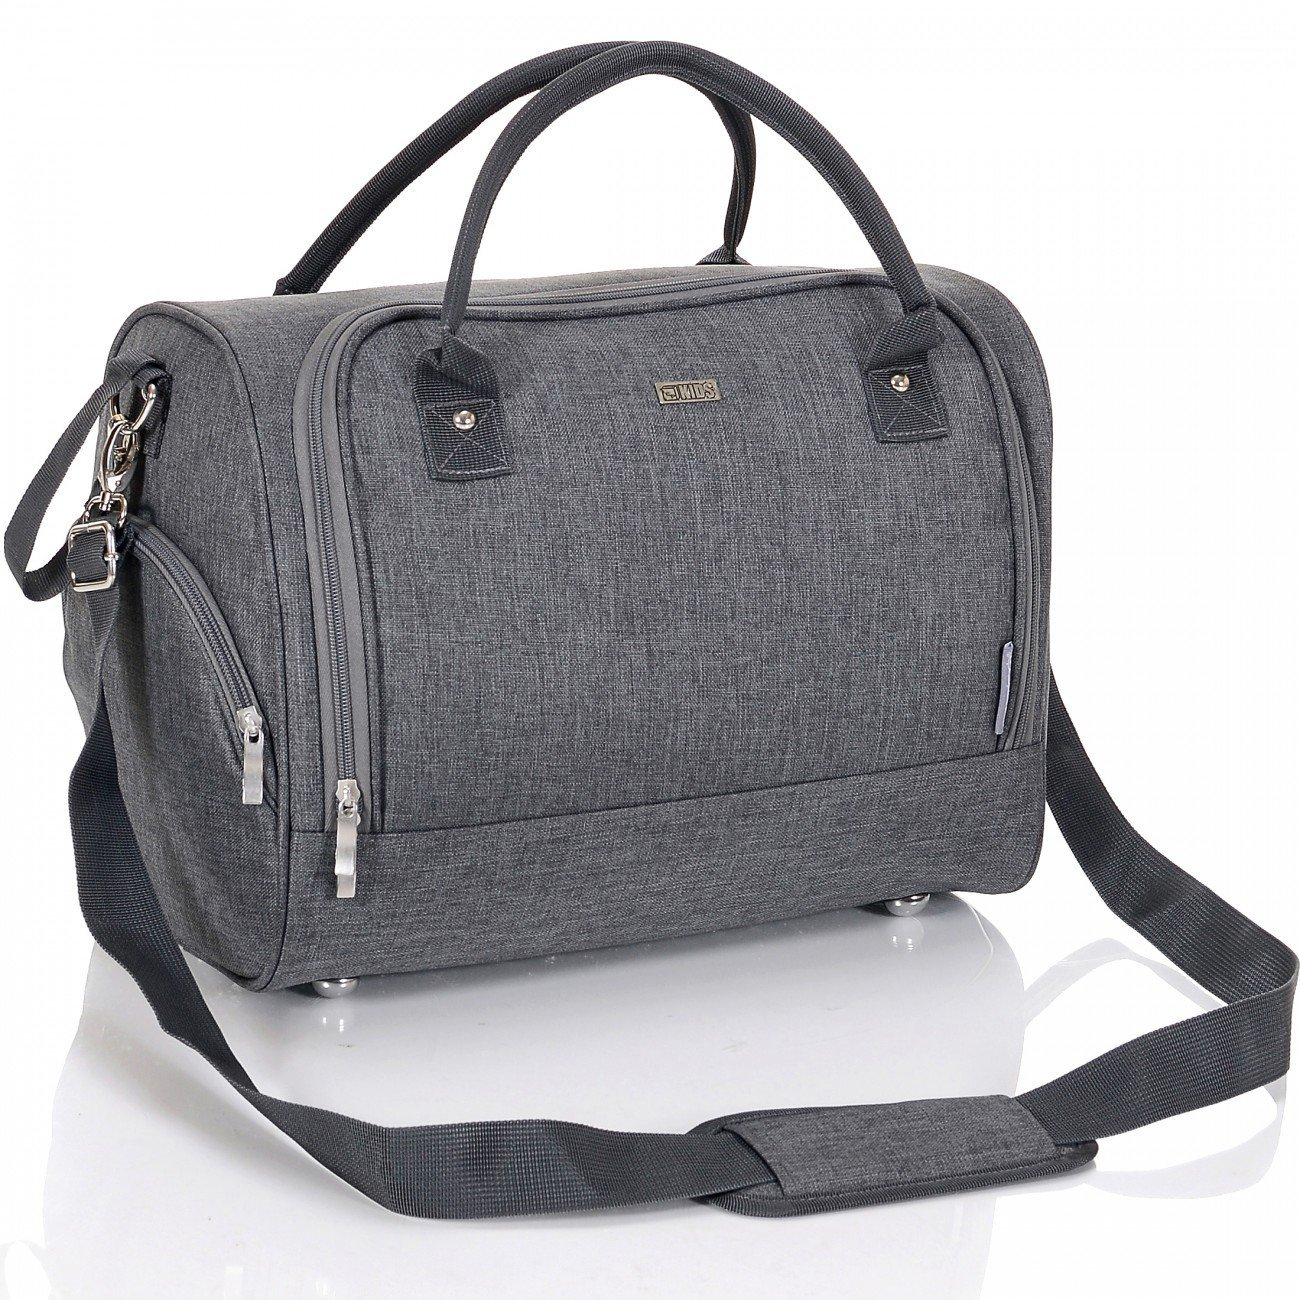 Baby Wickeltasche Lcp Kids 668 Baby Wickeltasche Sydney Gray Windeln Tests De